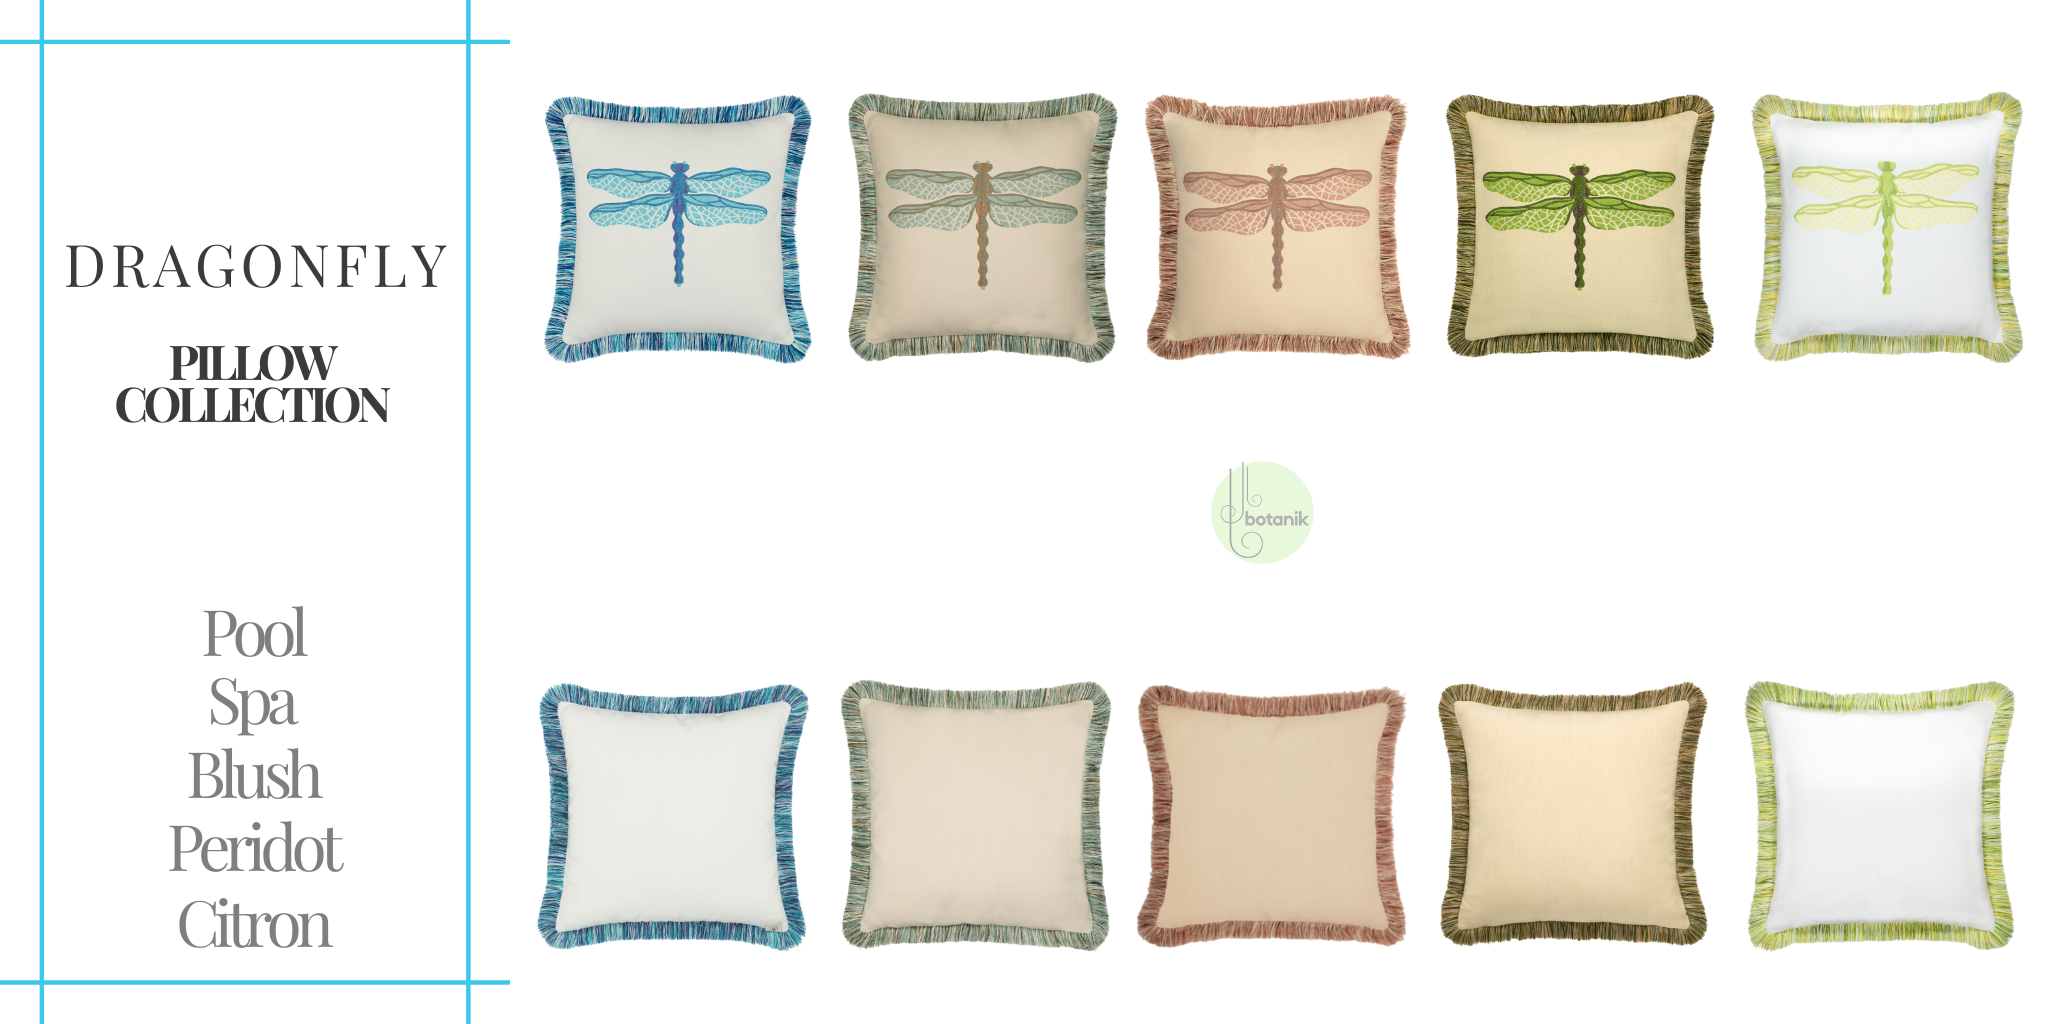 dragonfly-pillow-collection from Elaine Smith